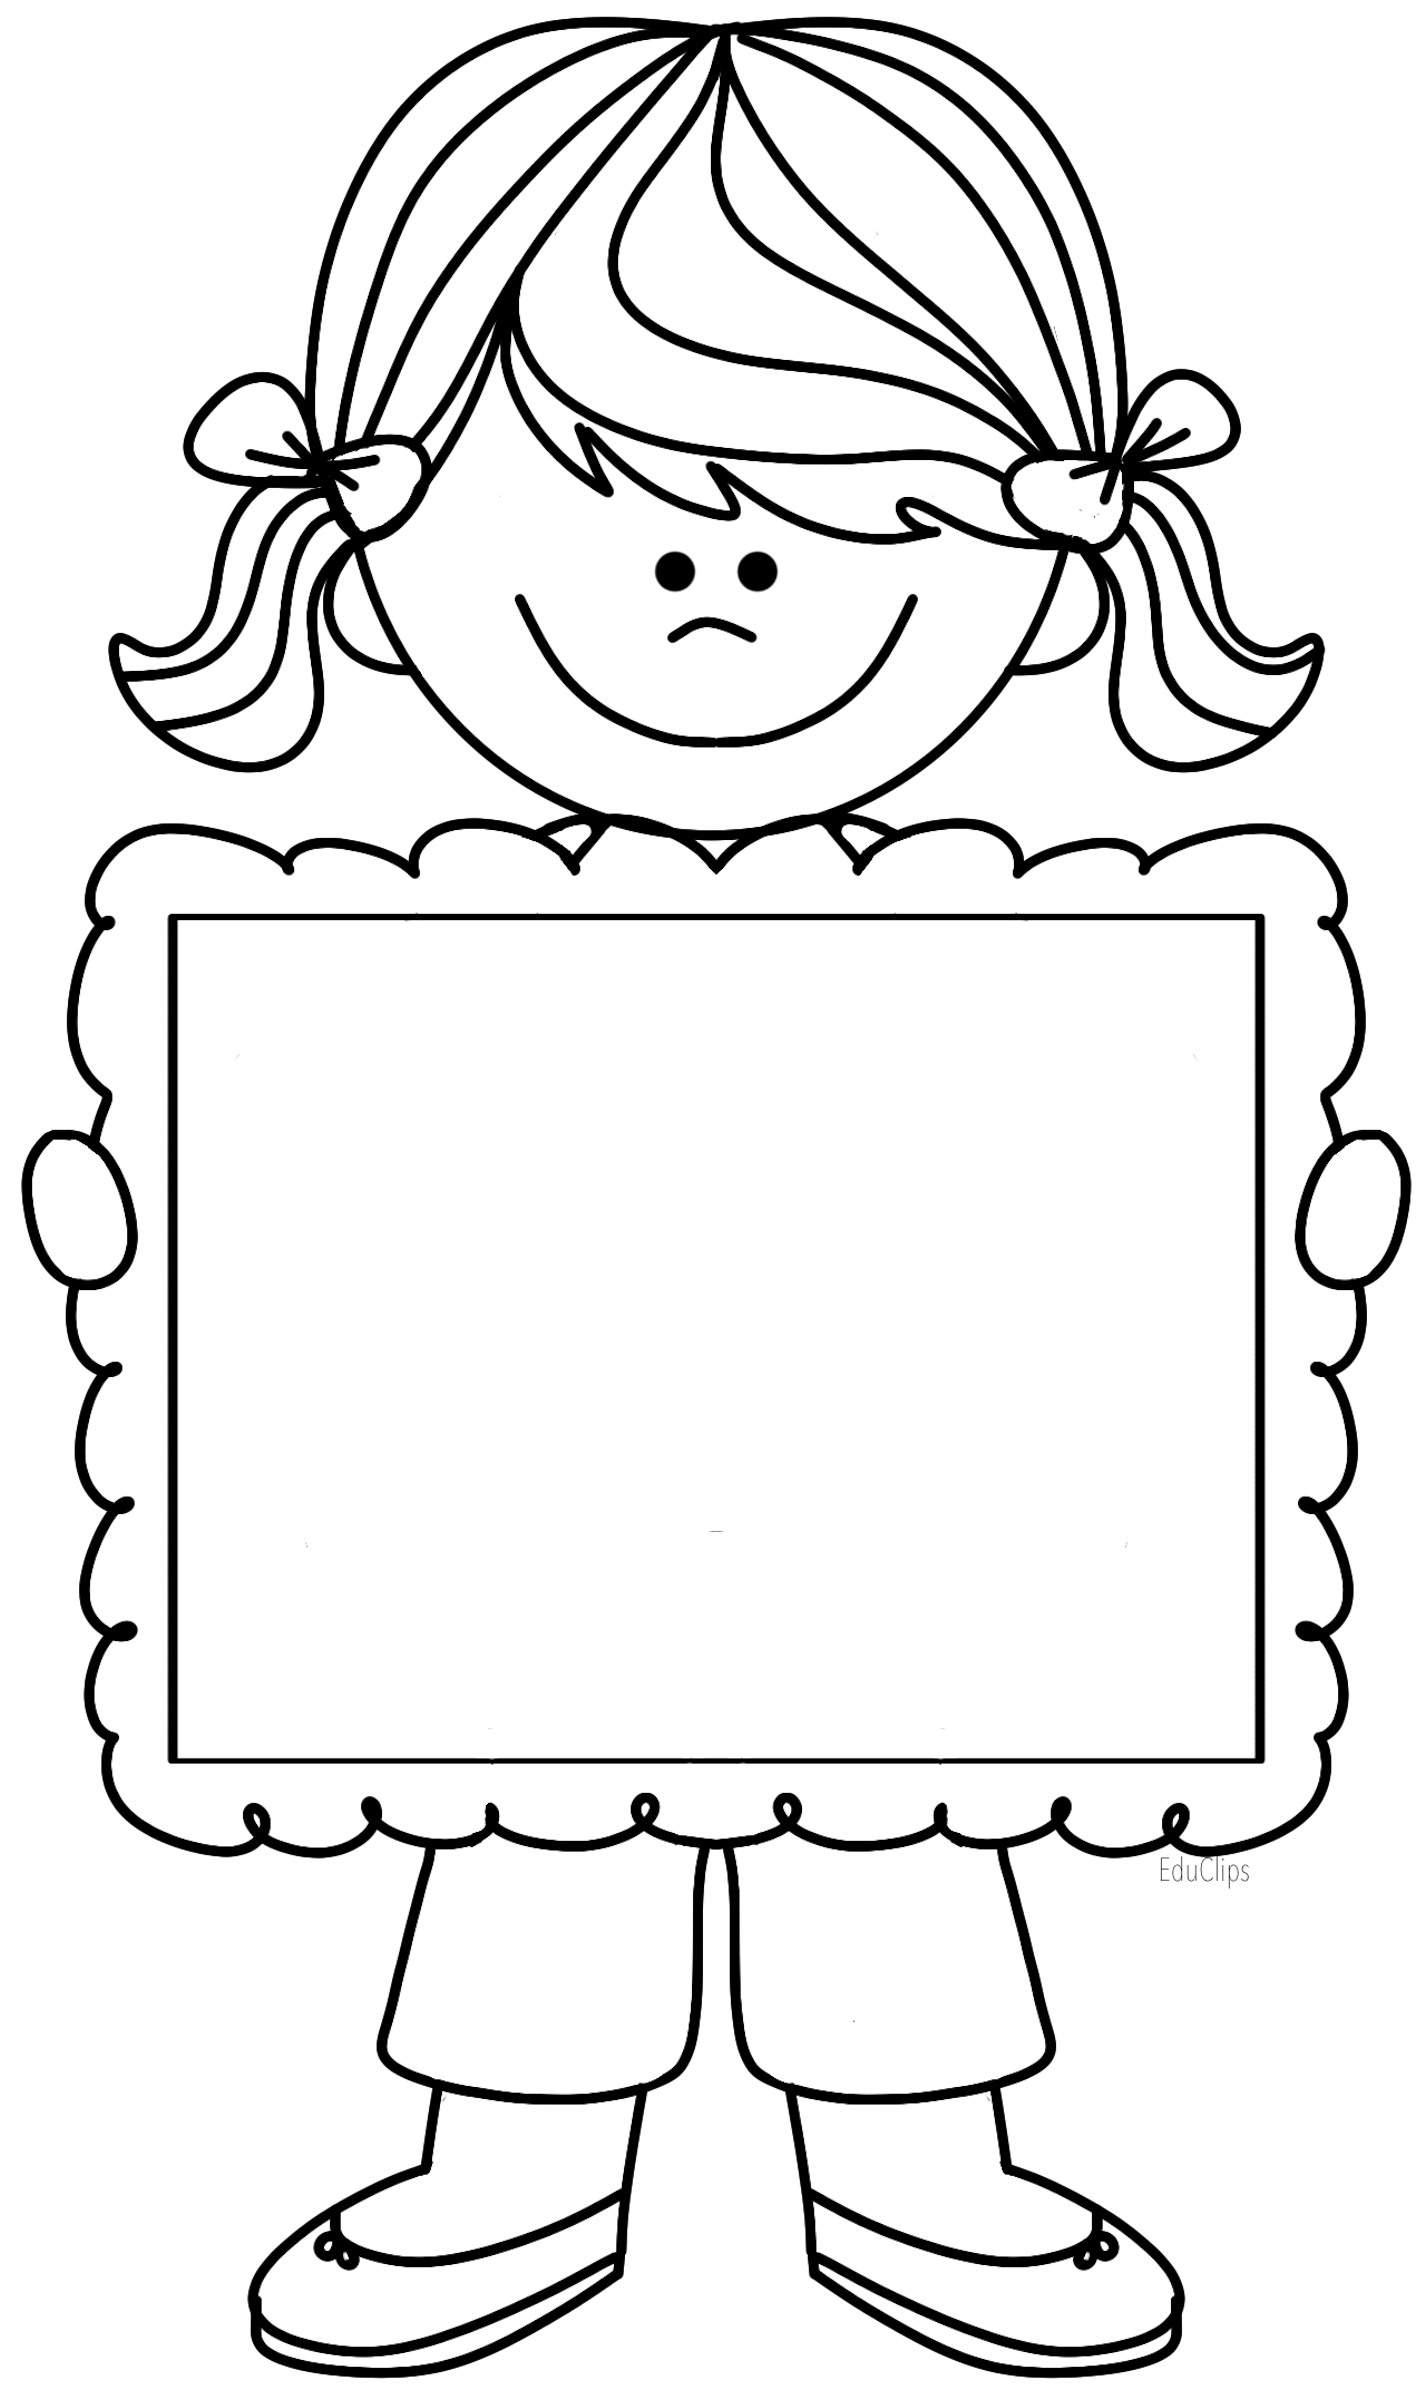 Cute girl clipart holding frame, there's space to write